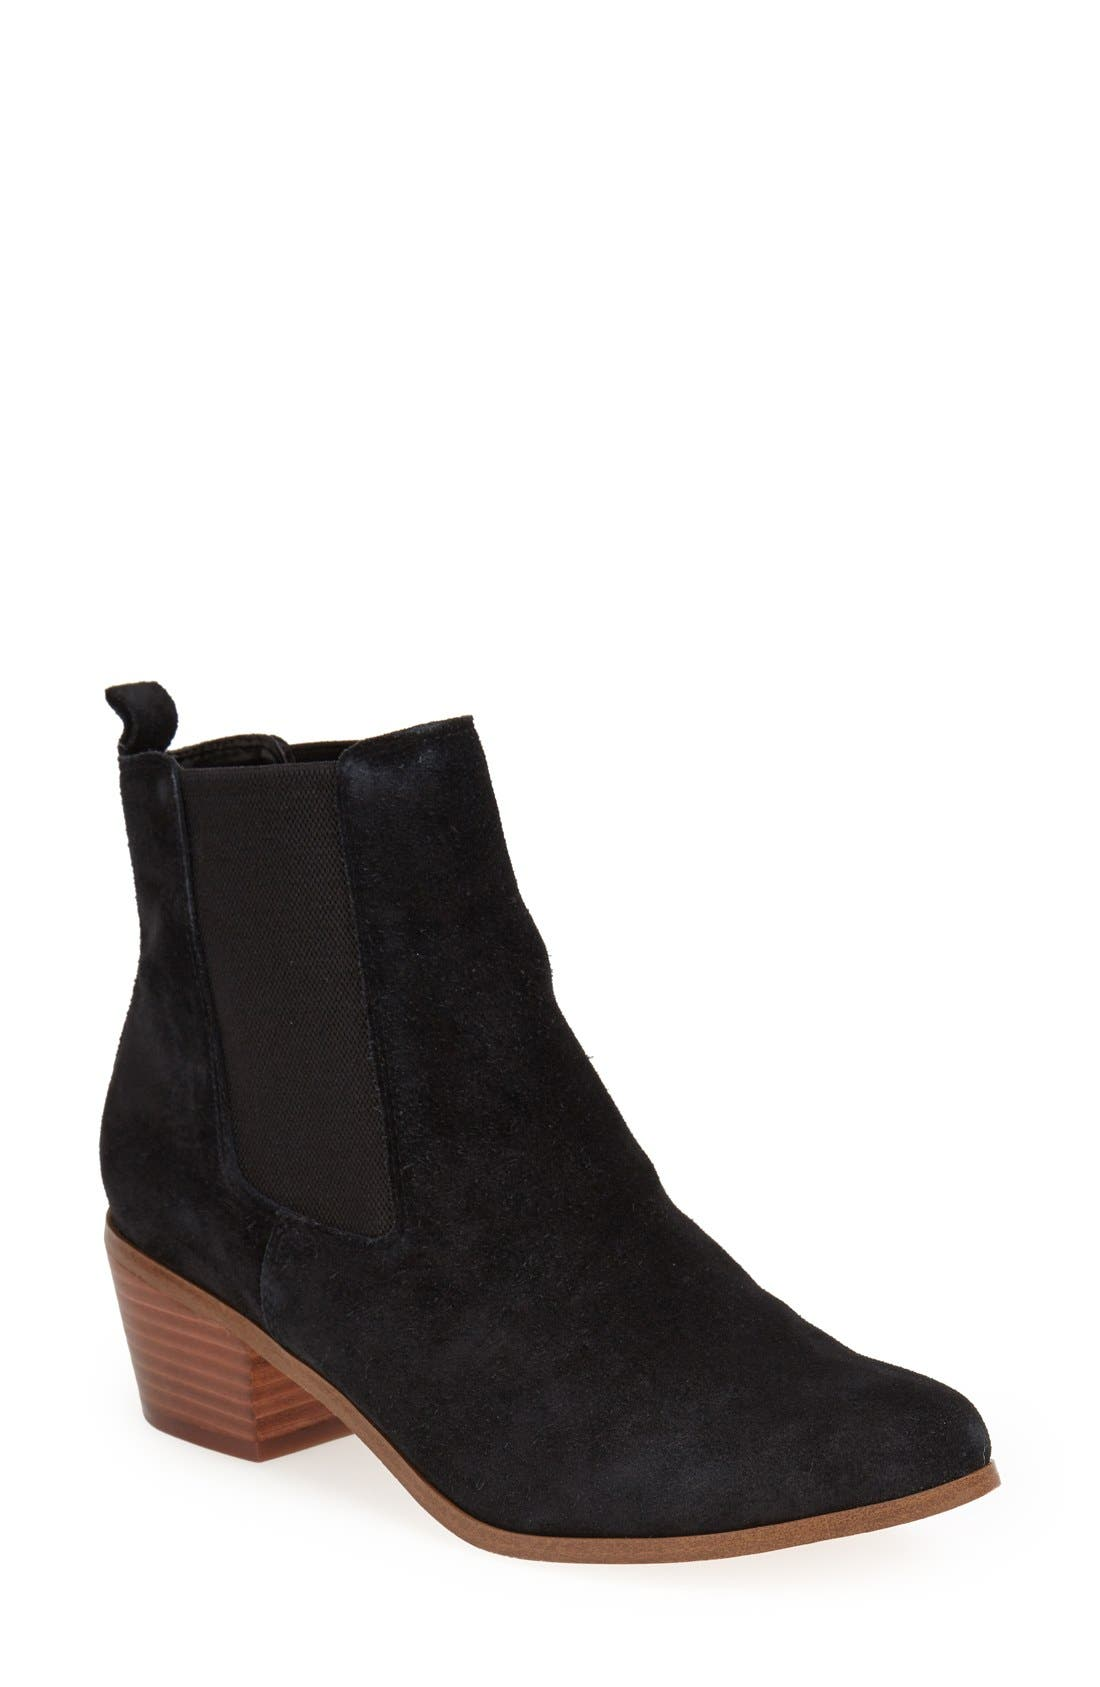 'Annex' Chelsea Ankle Boot, Main, color, 001